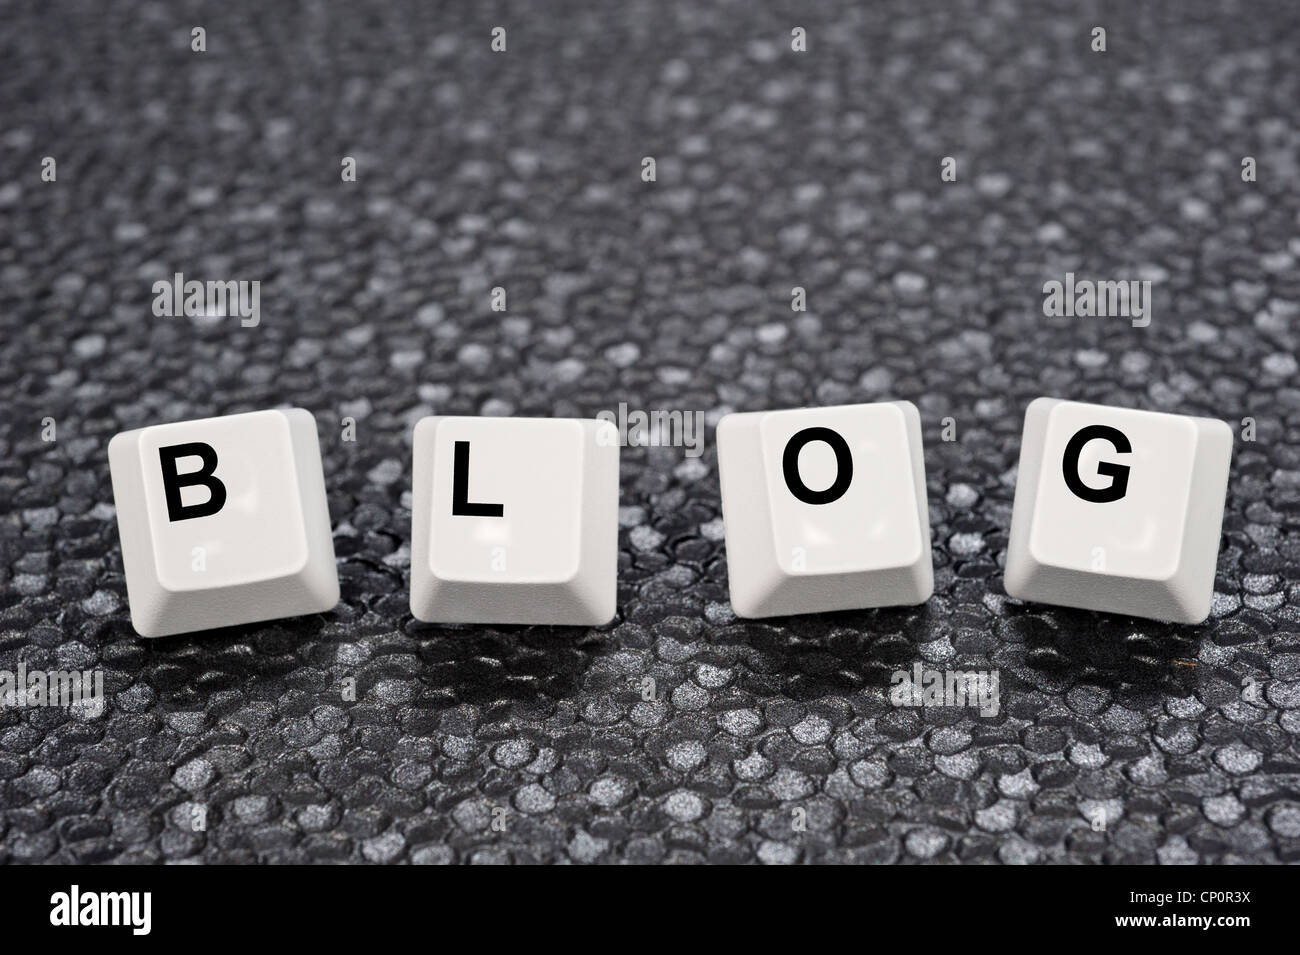 A set of computer keyboard keys spelling out BLOG. Good for Internet and technology inferences. - Stock Image